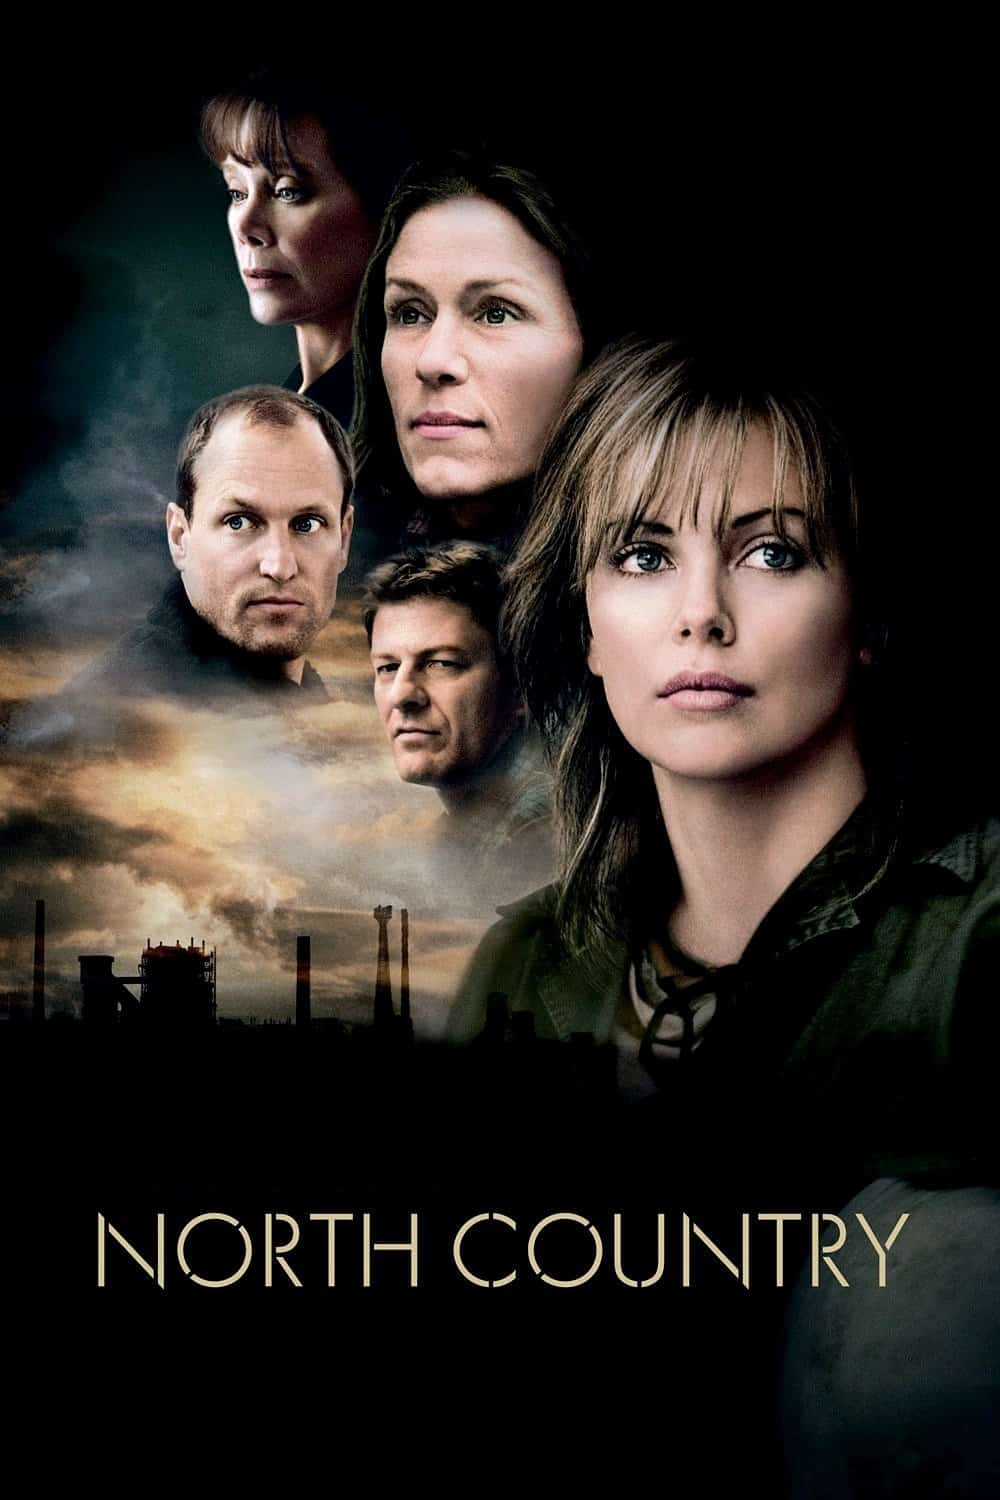 North Country, 2005